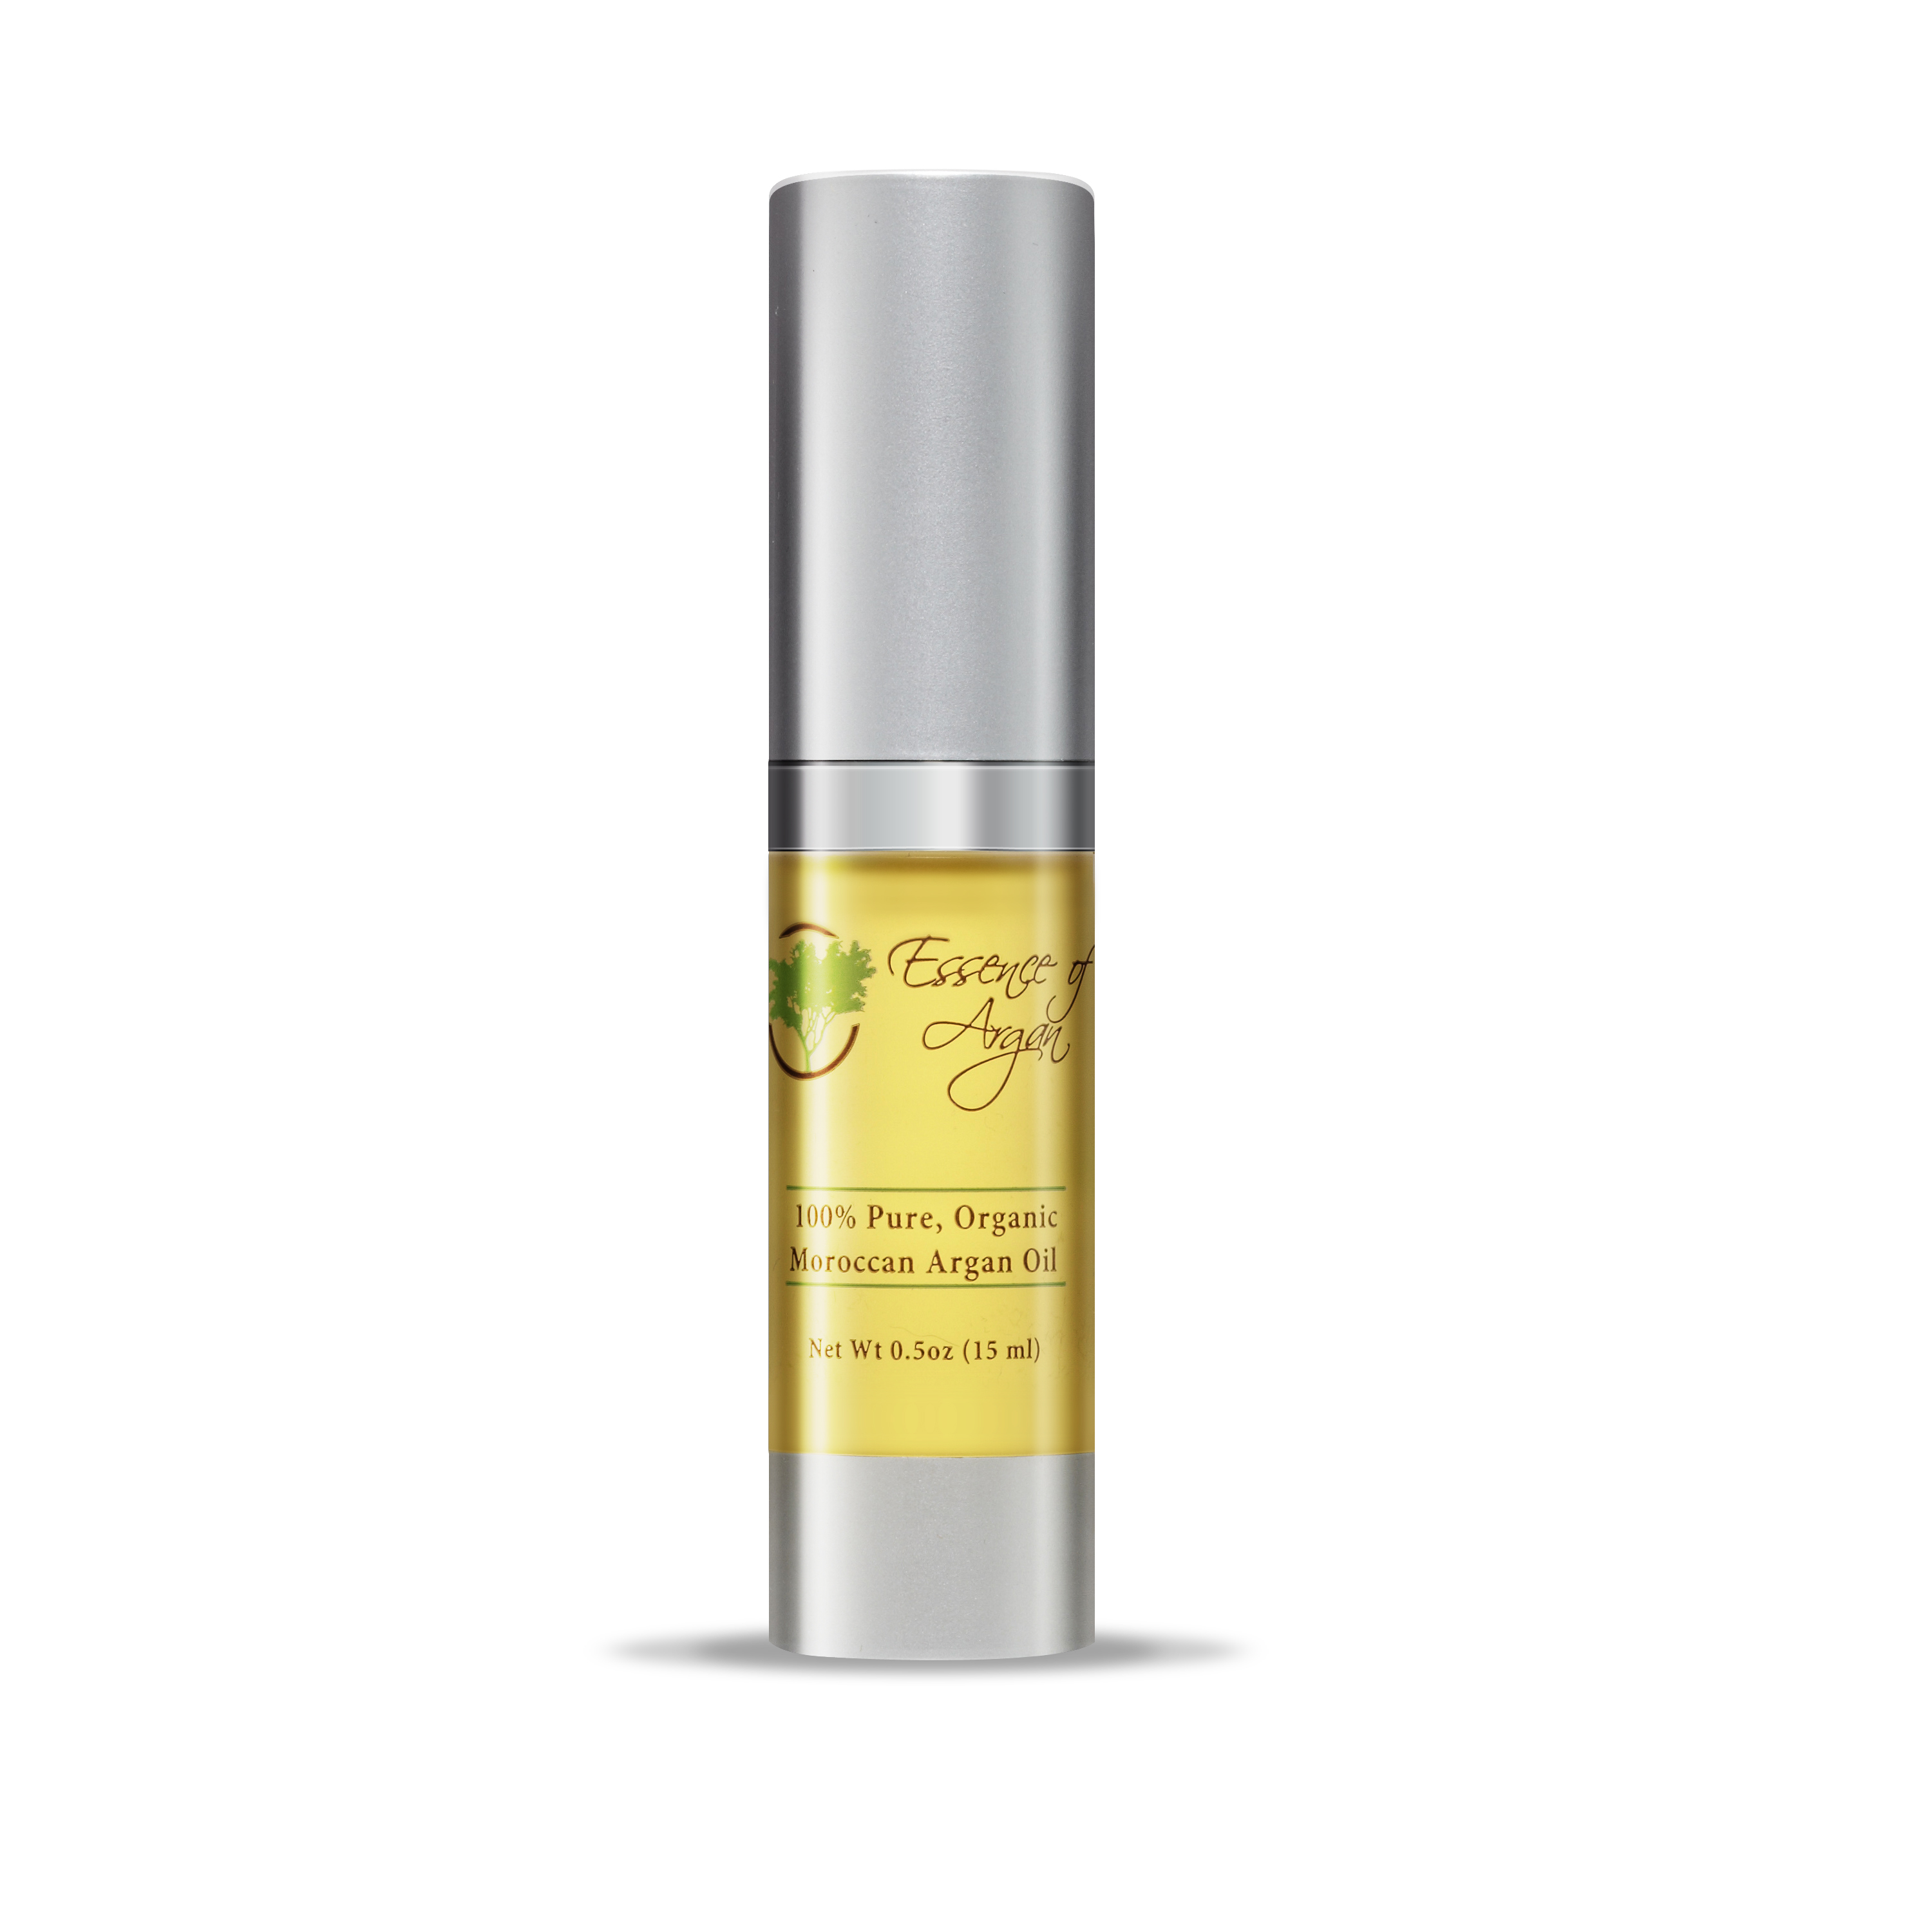 Essence of Argan 15ml (Pure Moroccan Argan Oil)